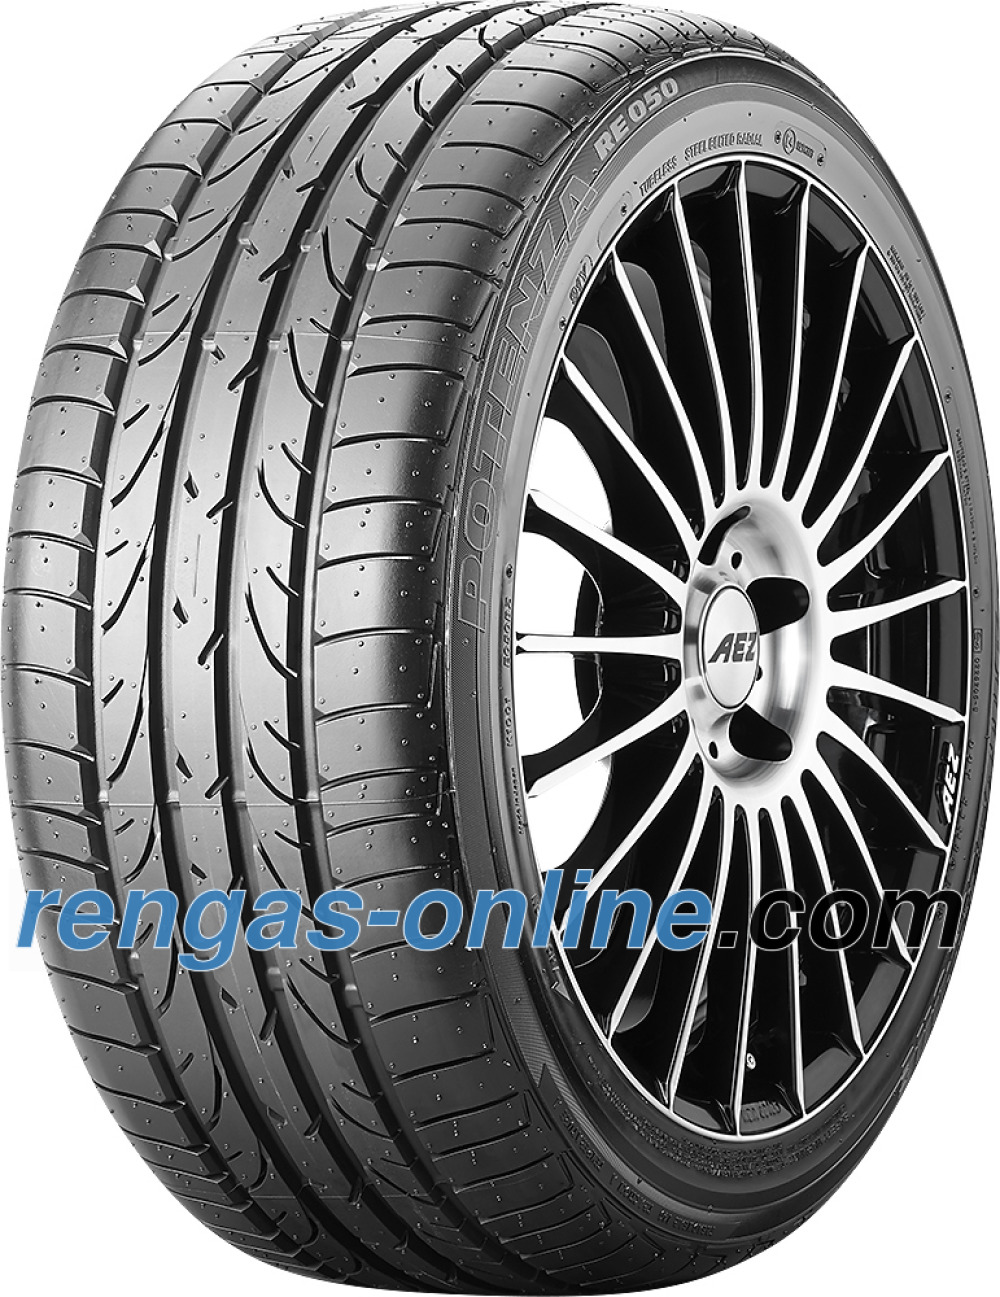 bridgestone-potenza-re-050-25540-r19-100y-xl-mo